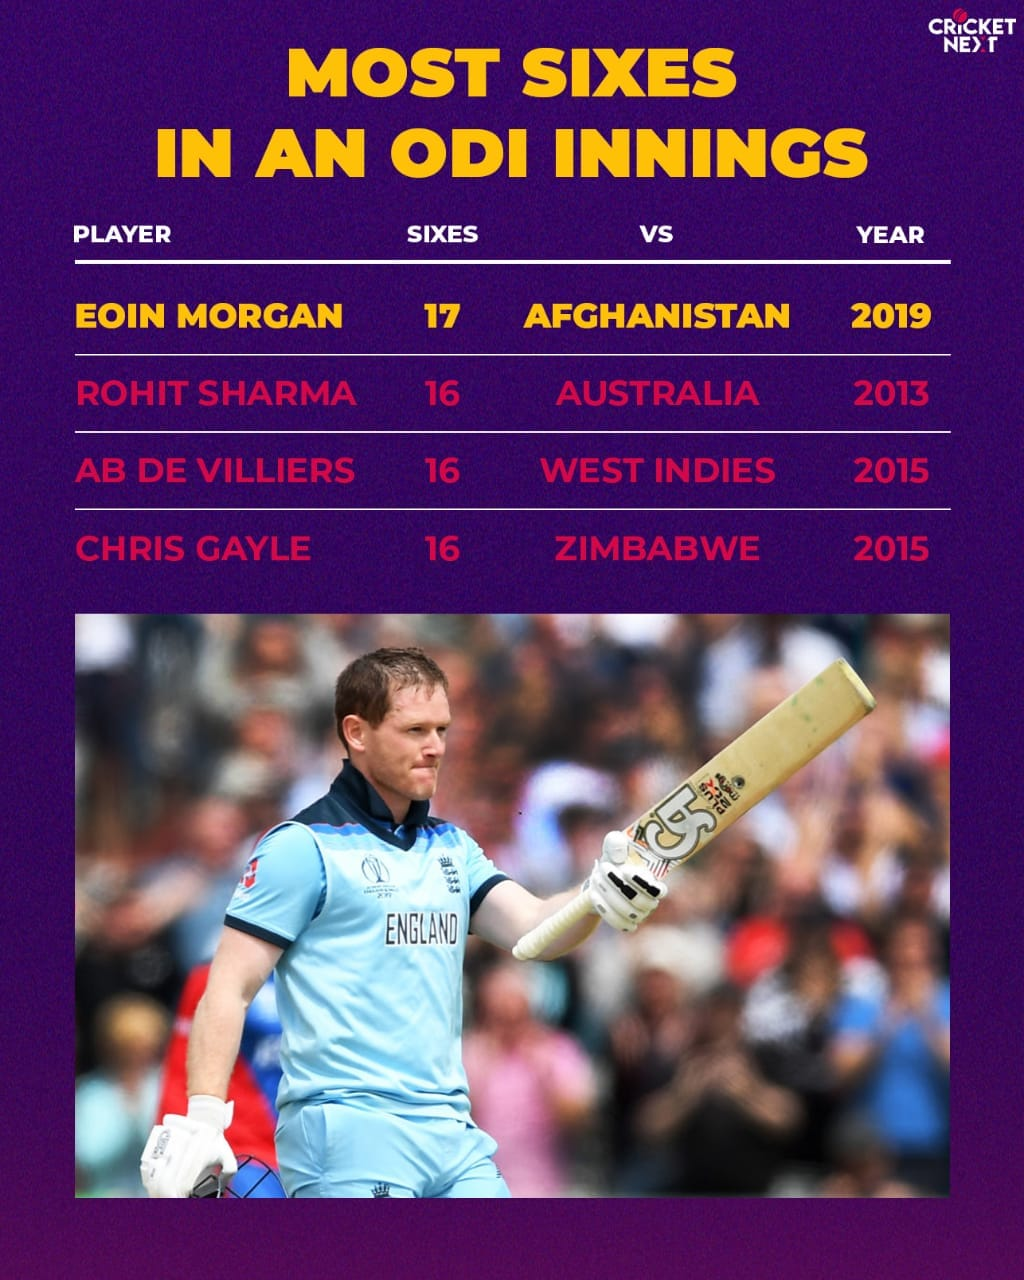 Most sixes in an innings